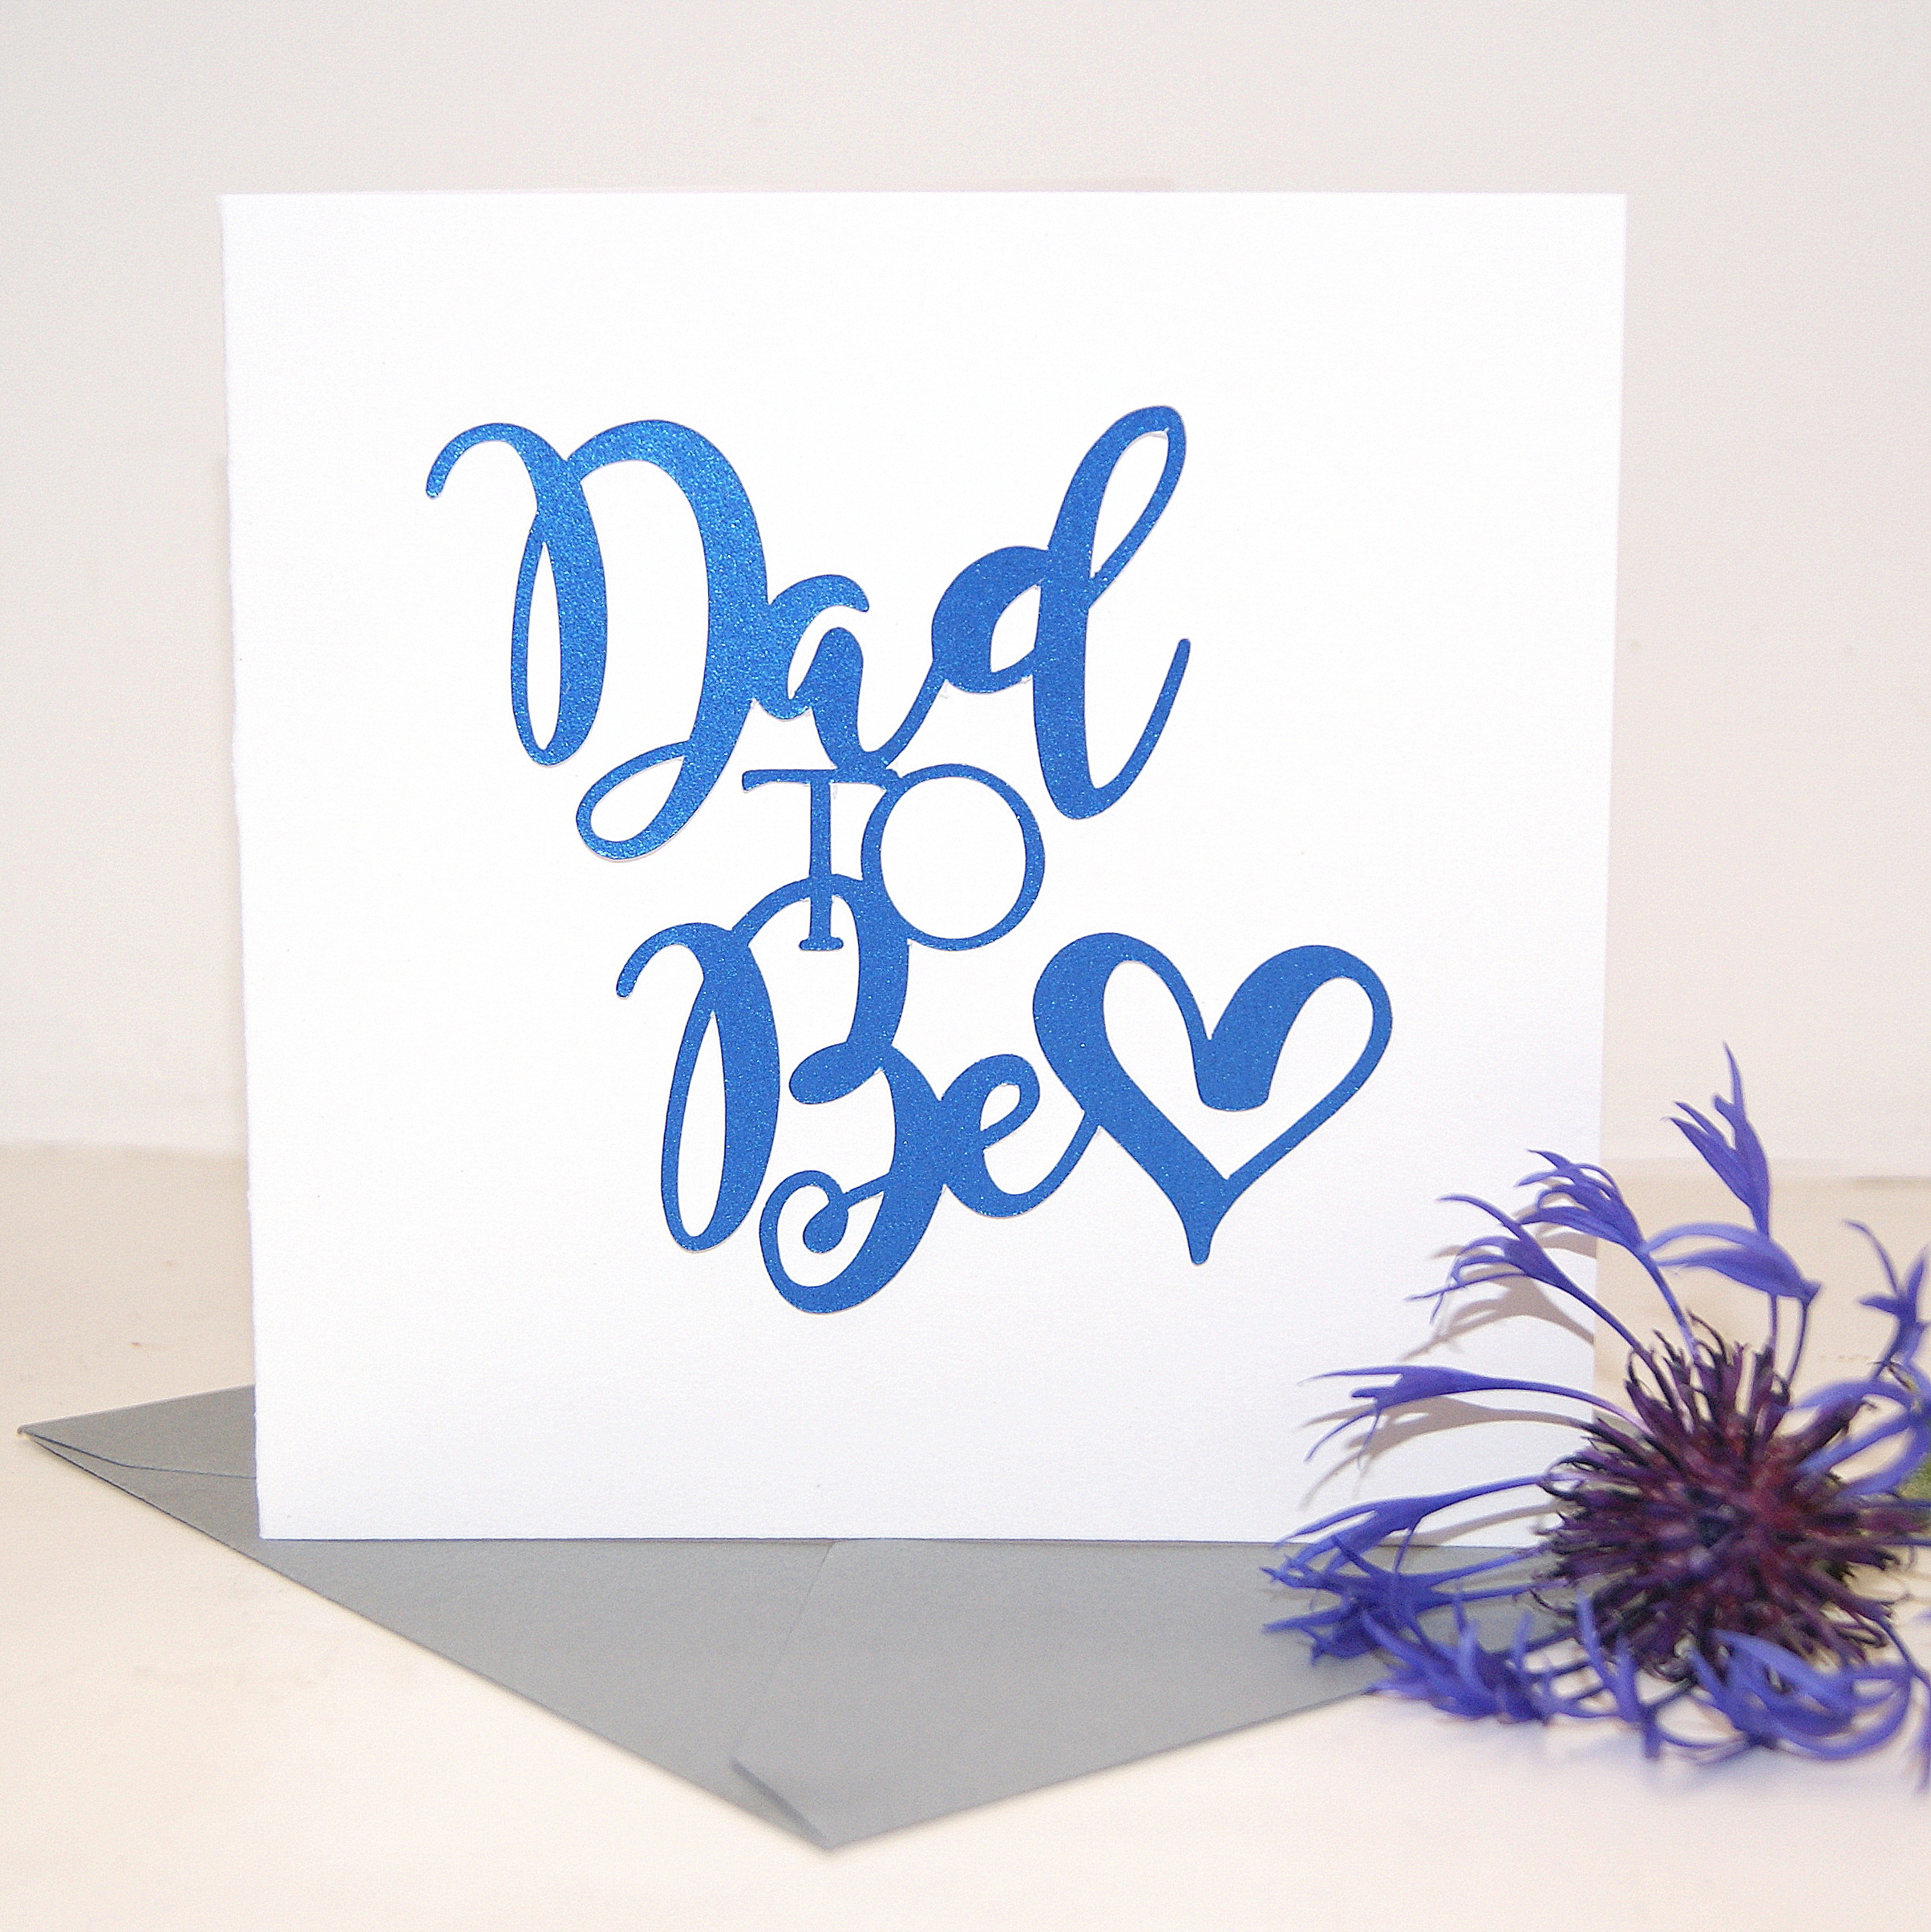 Dad to be birthday card shop online hummingbird card company dad to be birthday card bookmarktalkfo Images